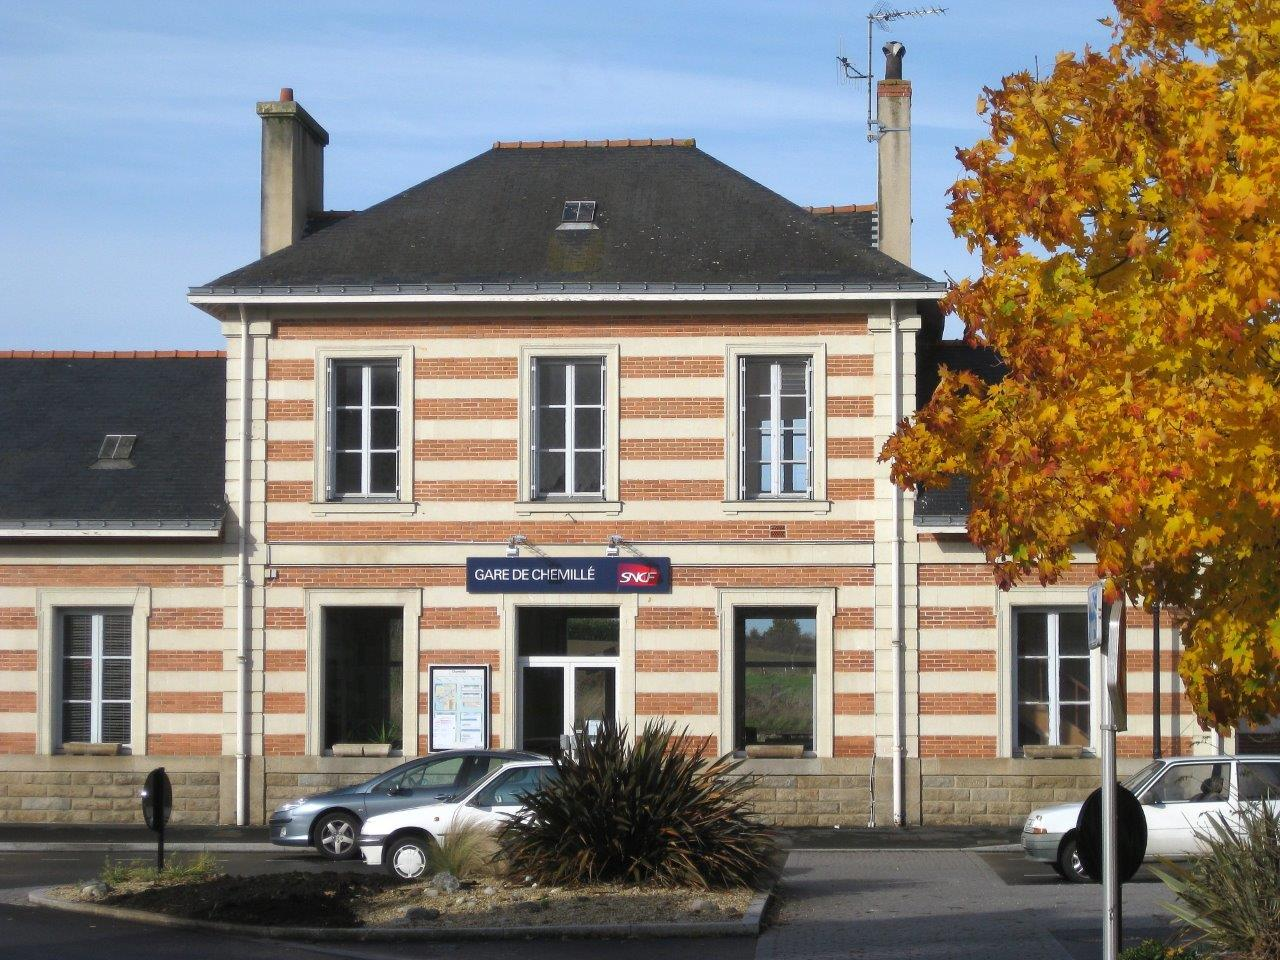 gare-de-chemille-train-station